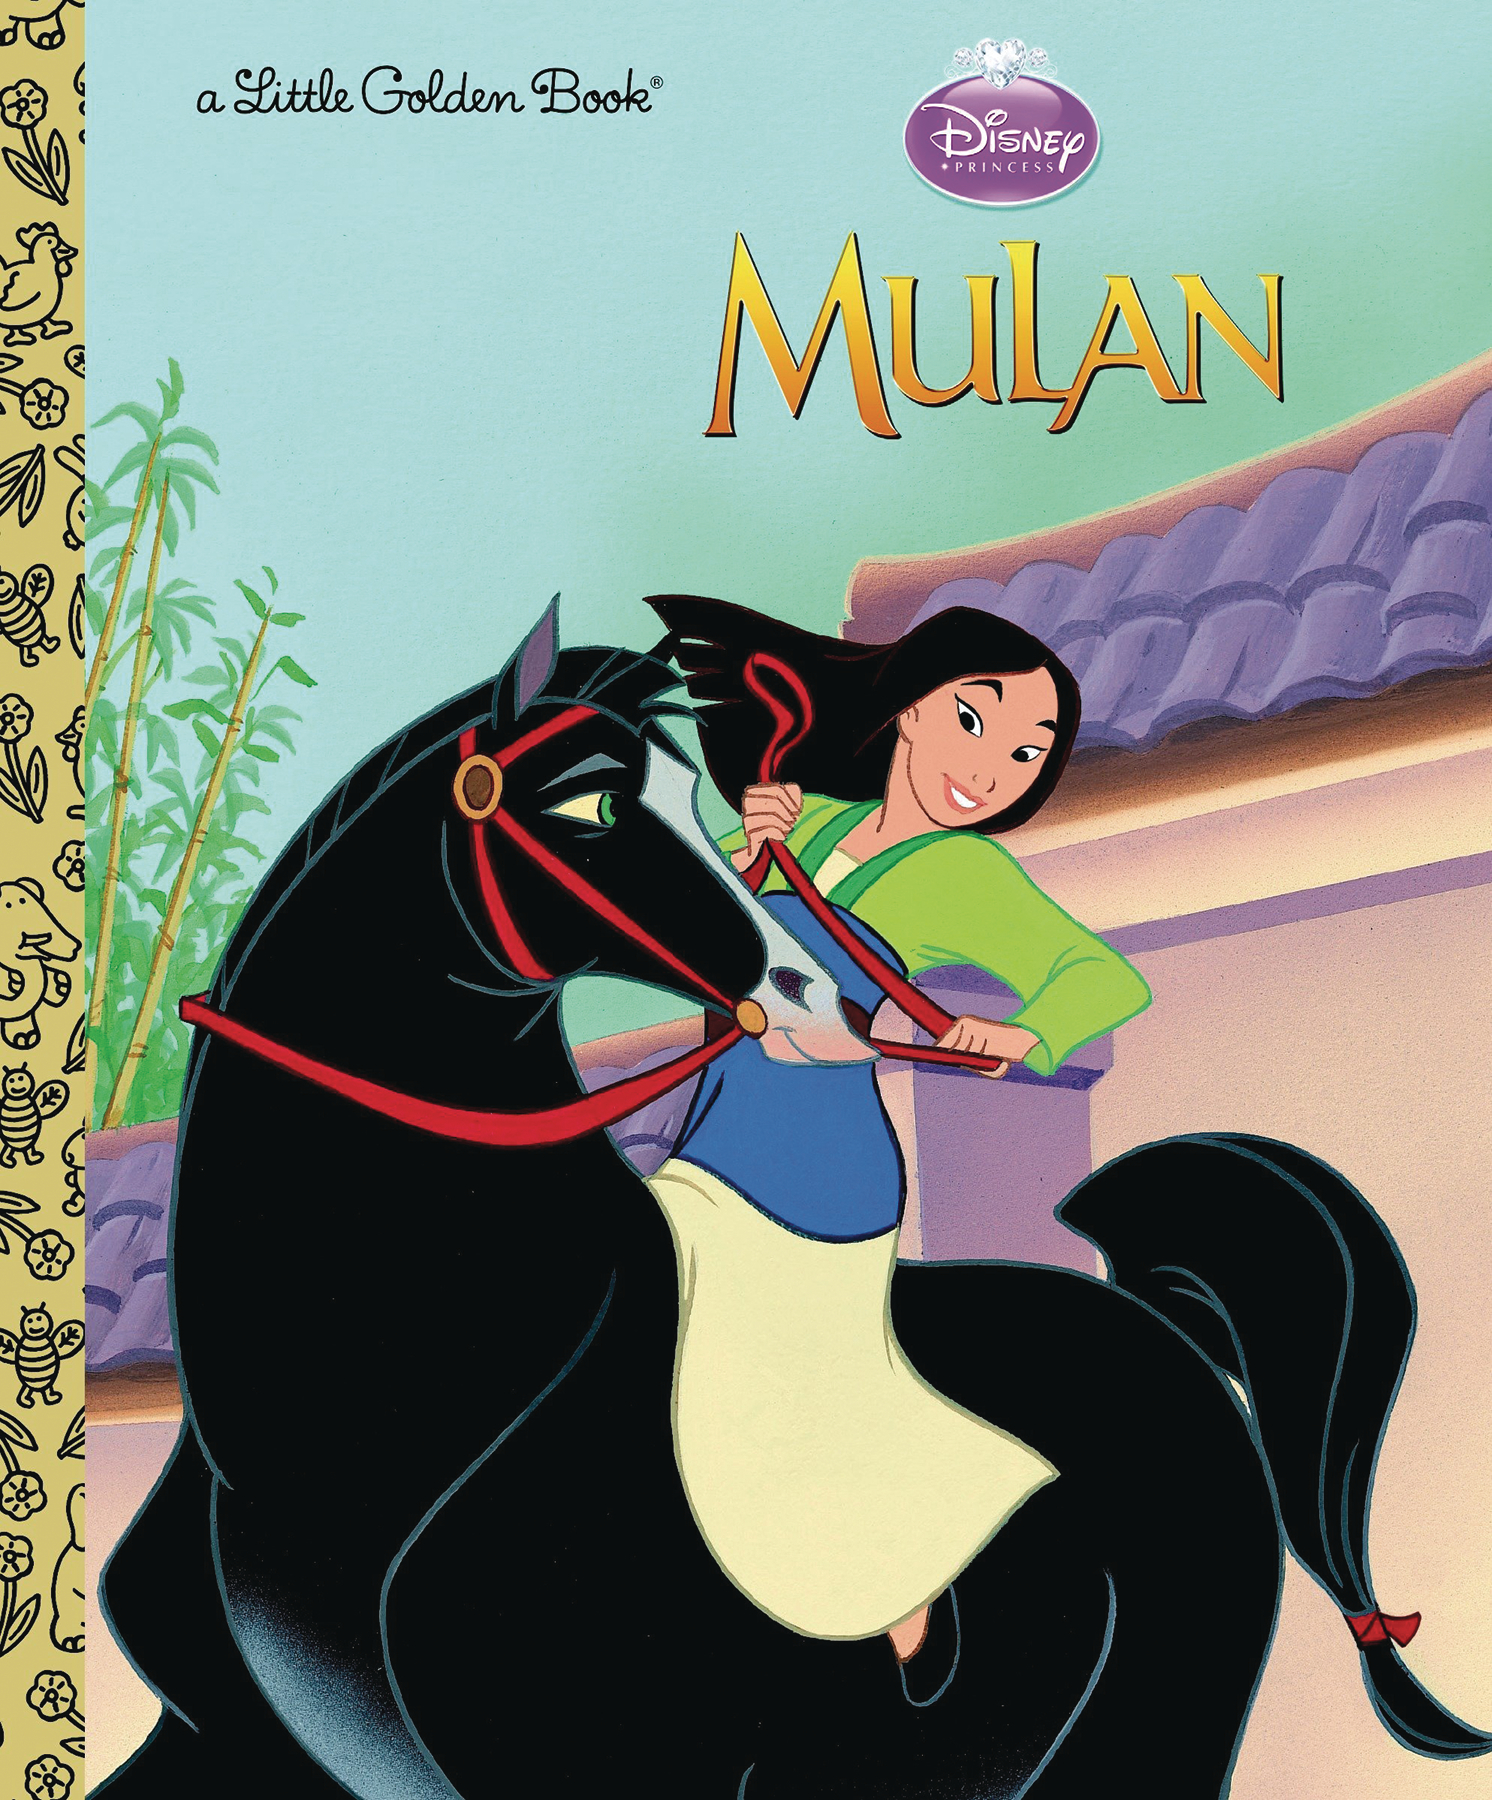 MULAN LITTLE GOLDEN BOOK